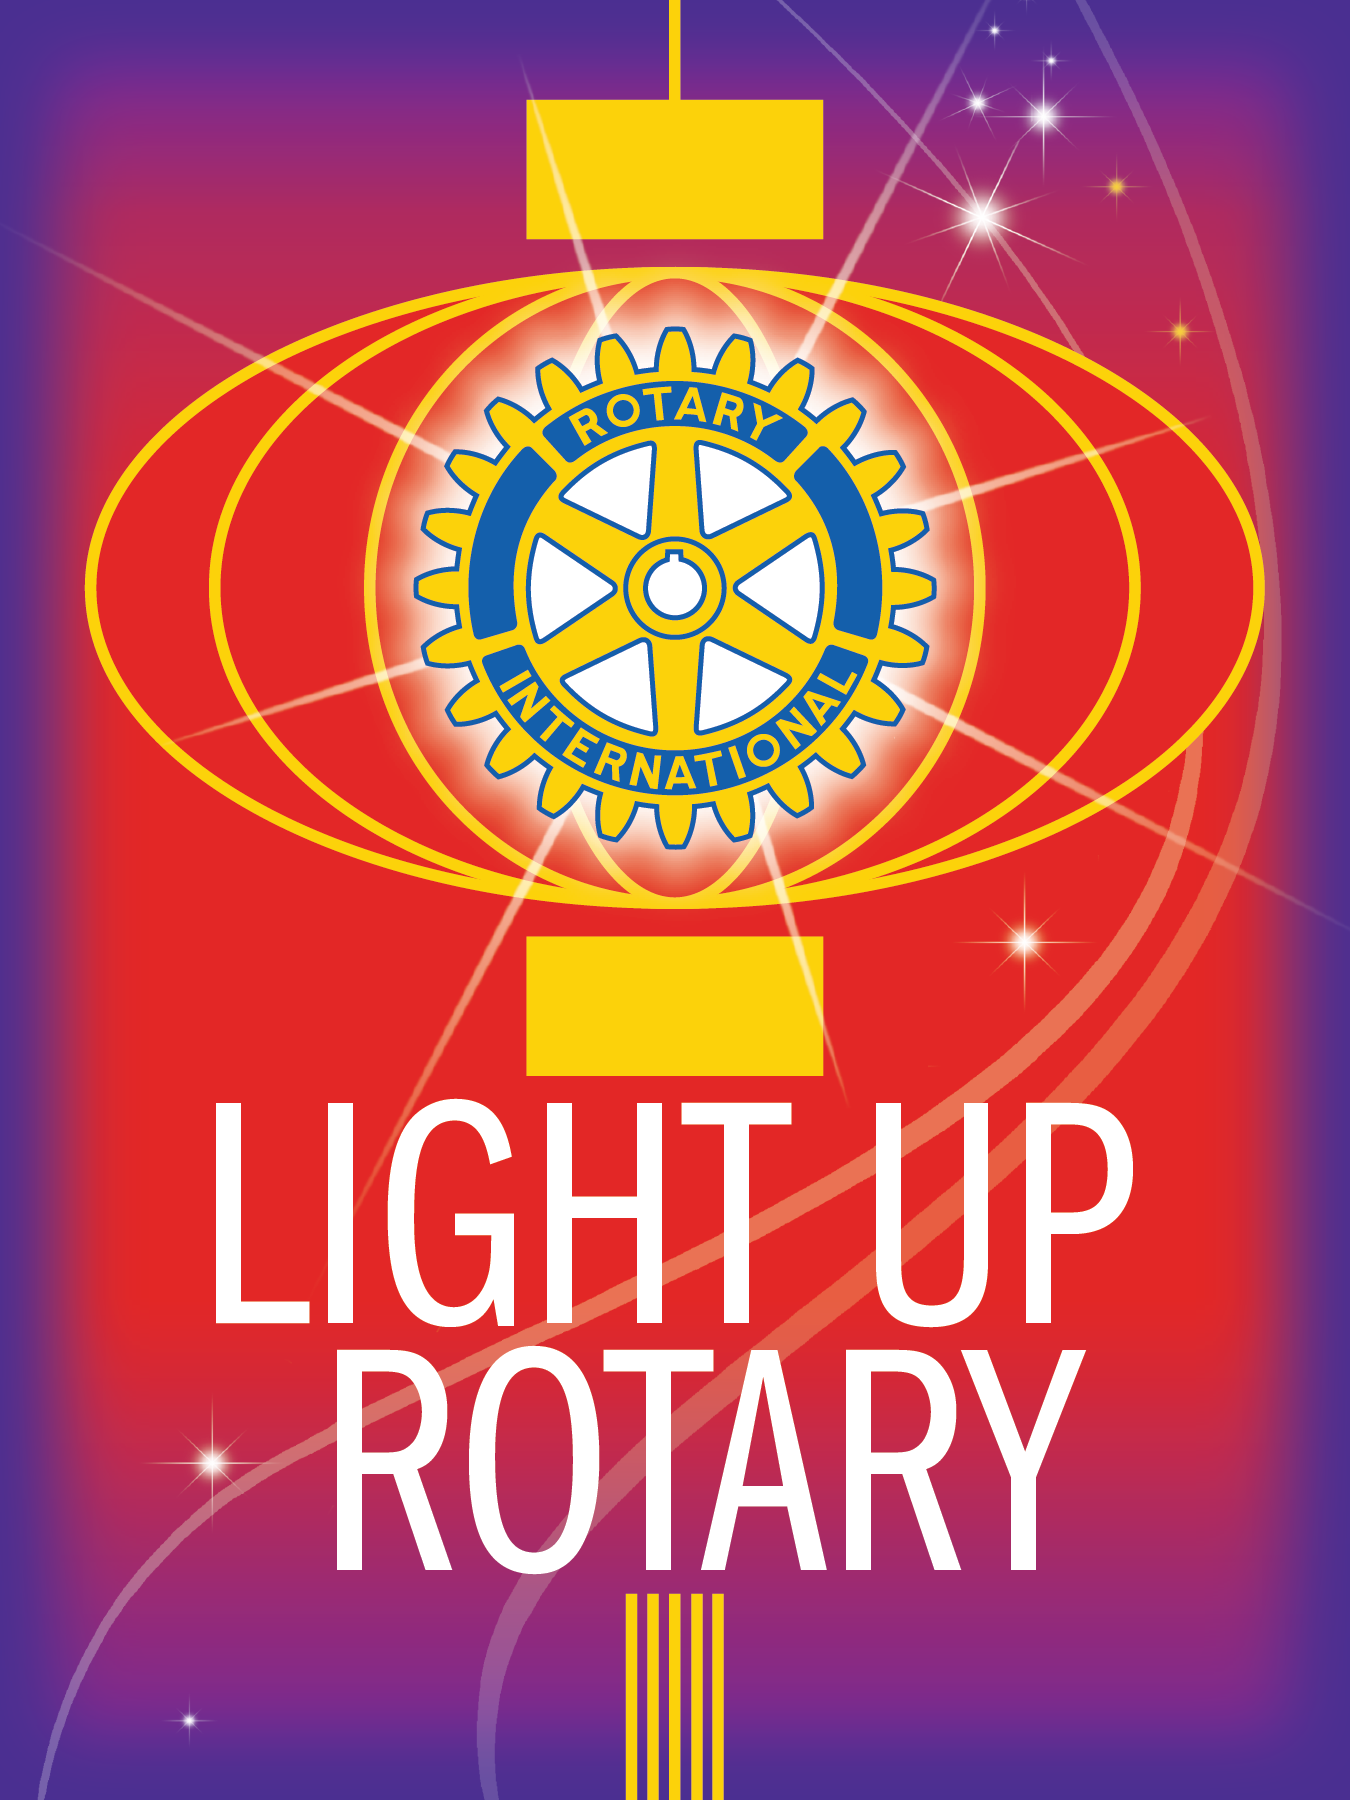 What Is Rotary Rotary Club Of Lake Forest Lake Bluff